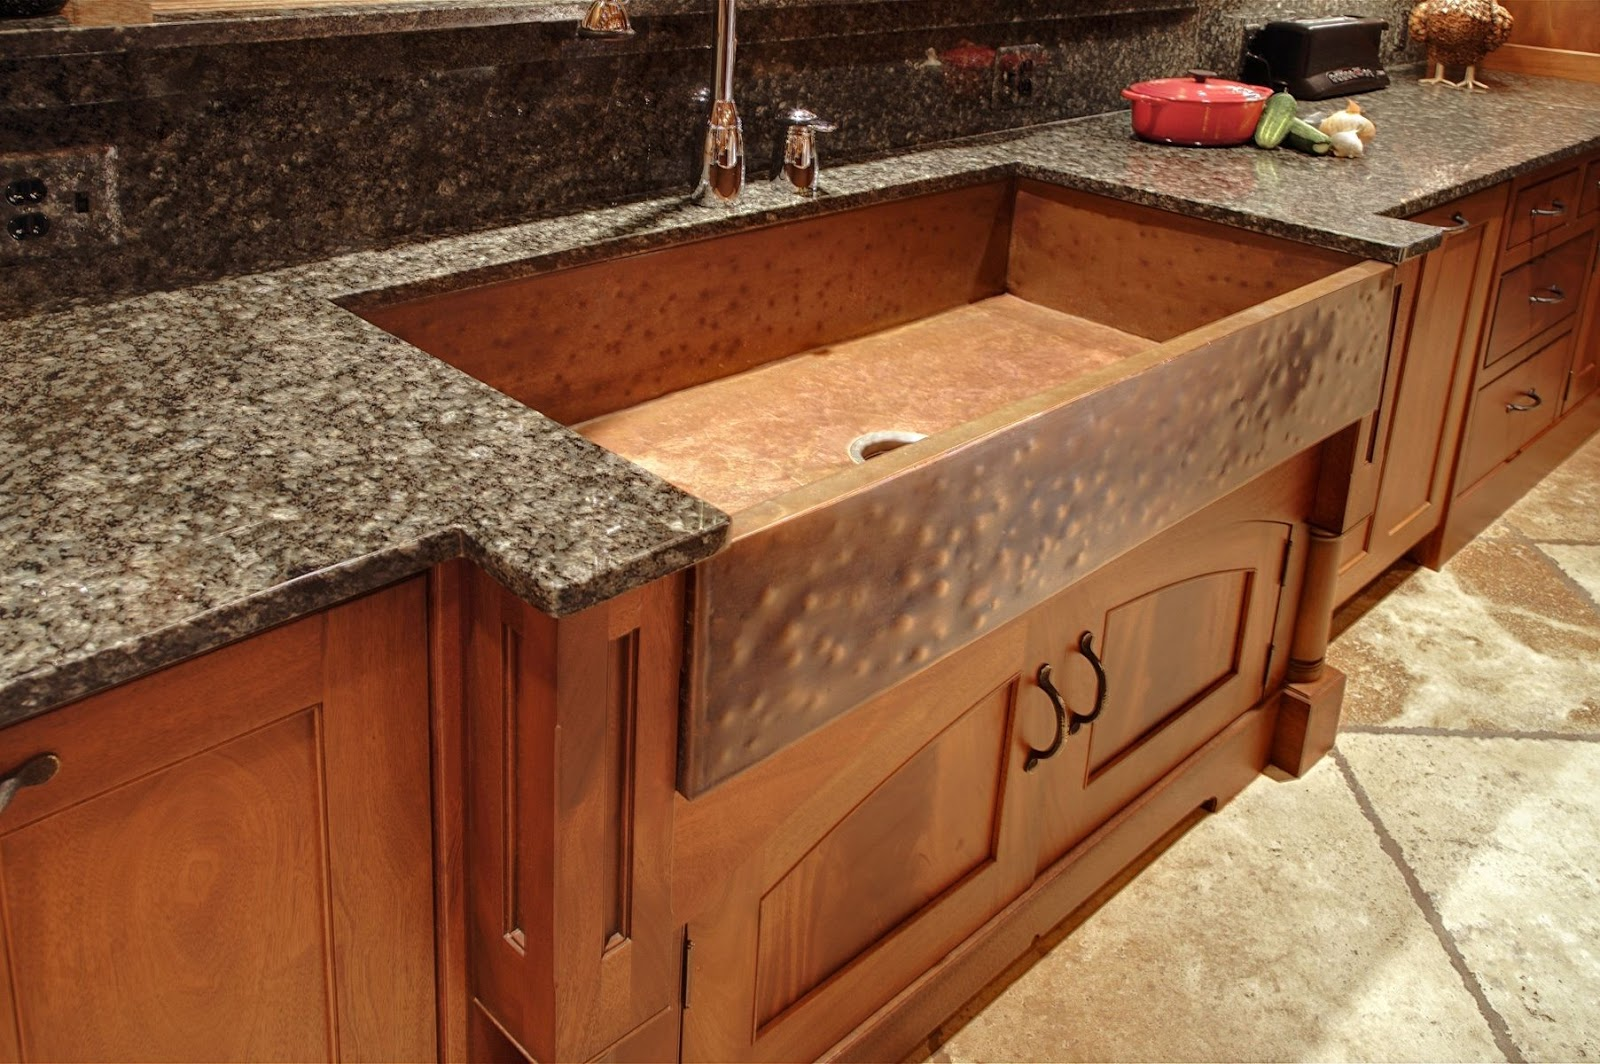 30 New Kitchen Sink Designs For Granite Countertops ... on Kitchen Farmhouse Granite Countertops  id=56332